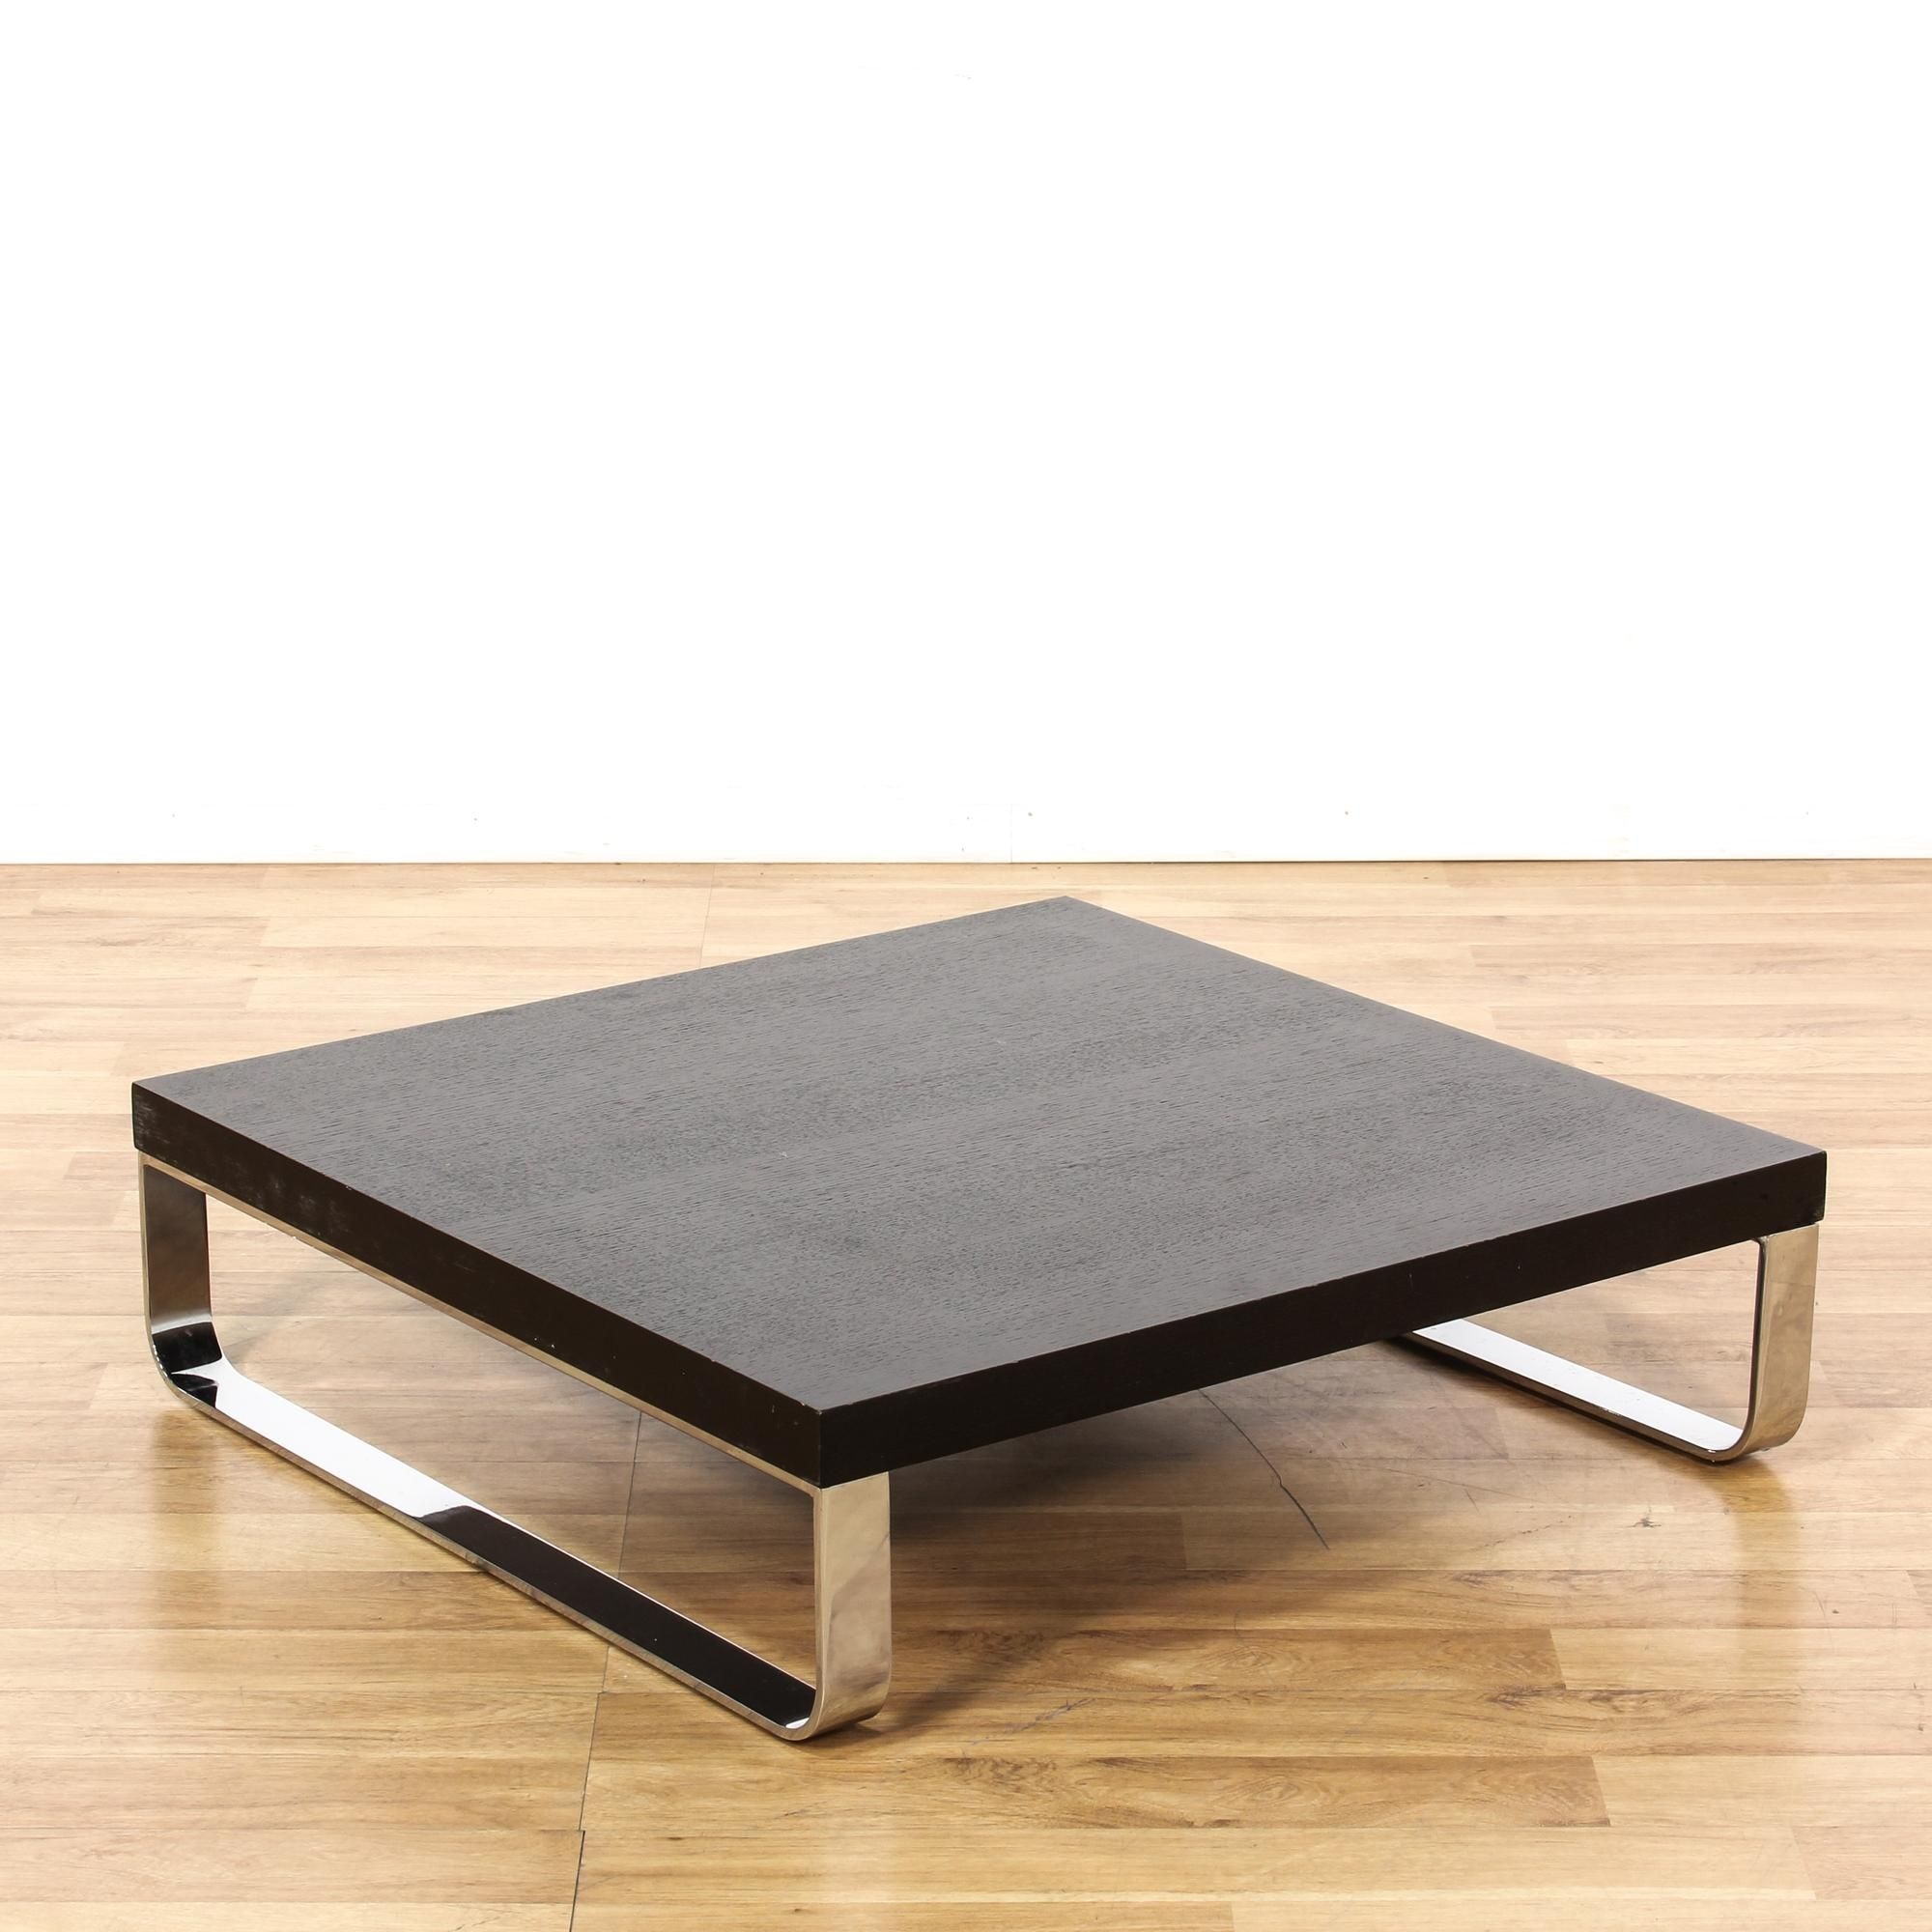 This Contemporary Coffee Table Is Featured In A Wood With A Black